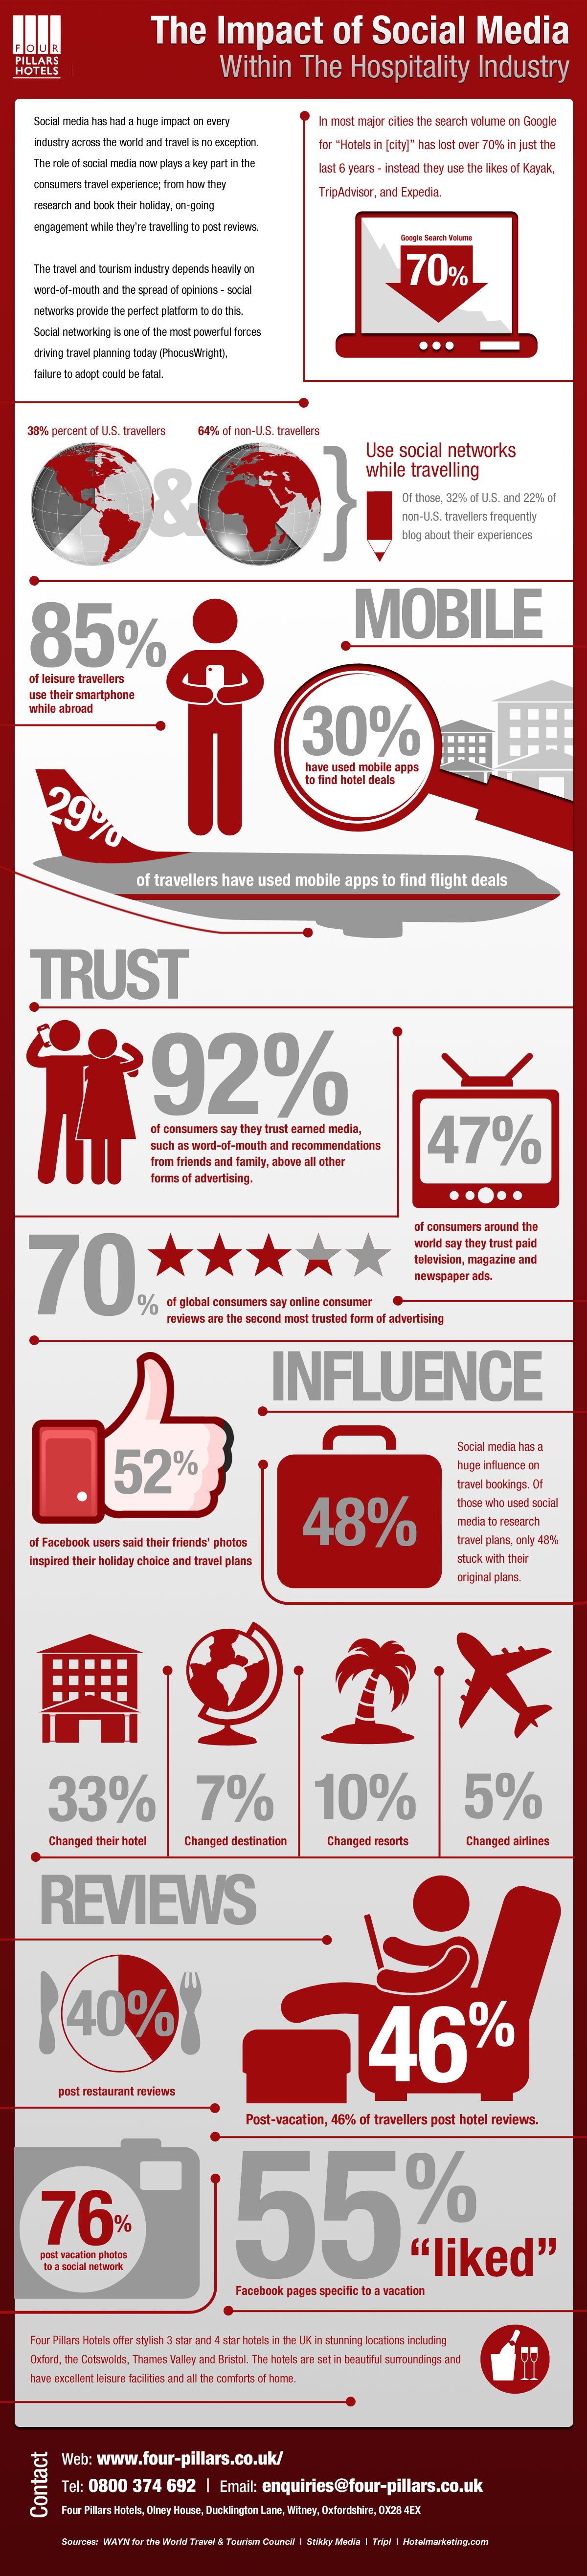 The-Impact-Of-Social-Media-Travel-And-Hospitality-infographic